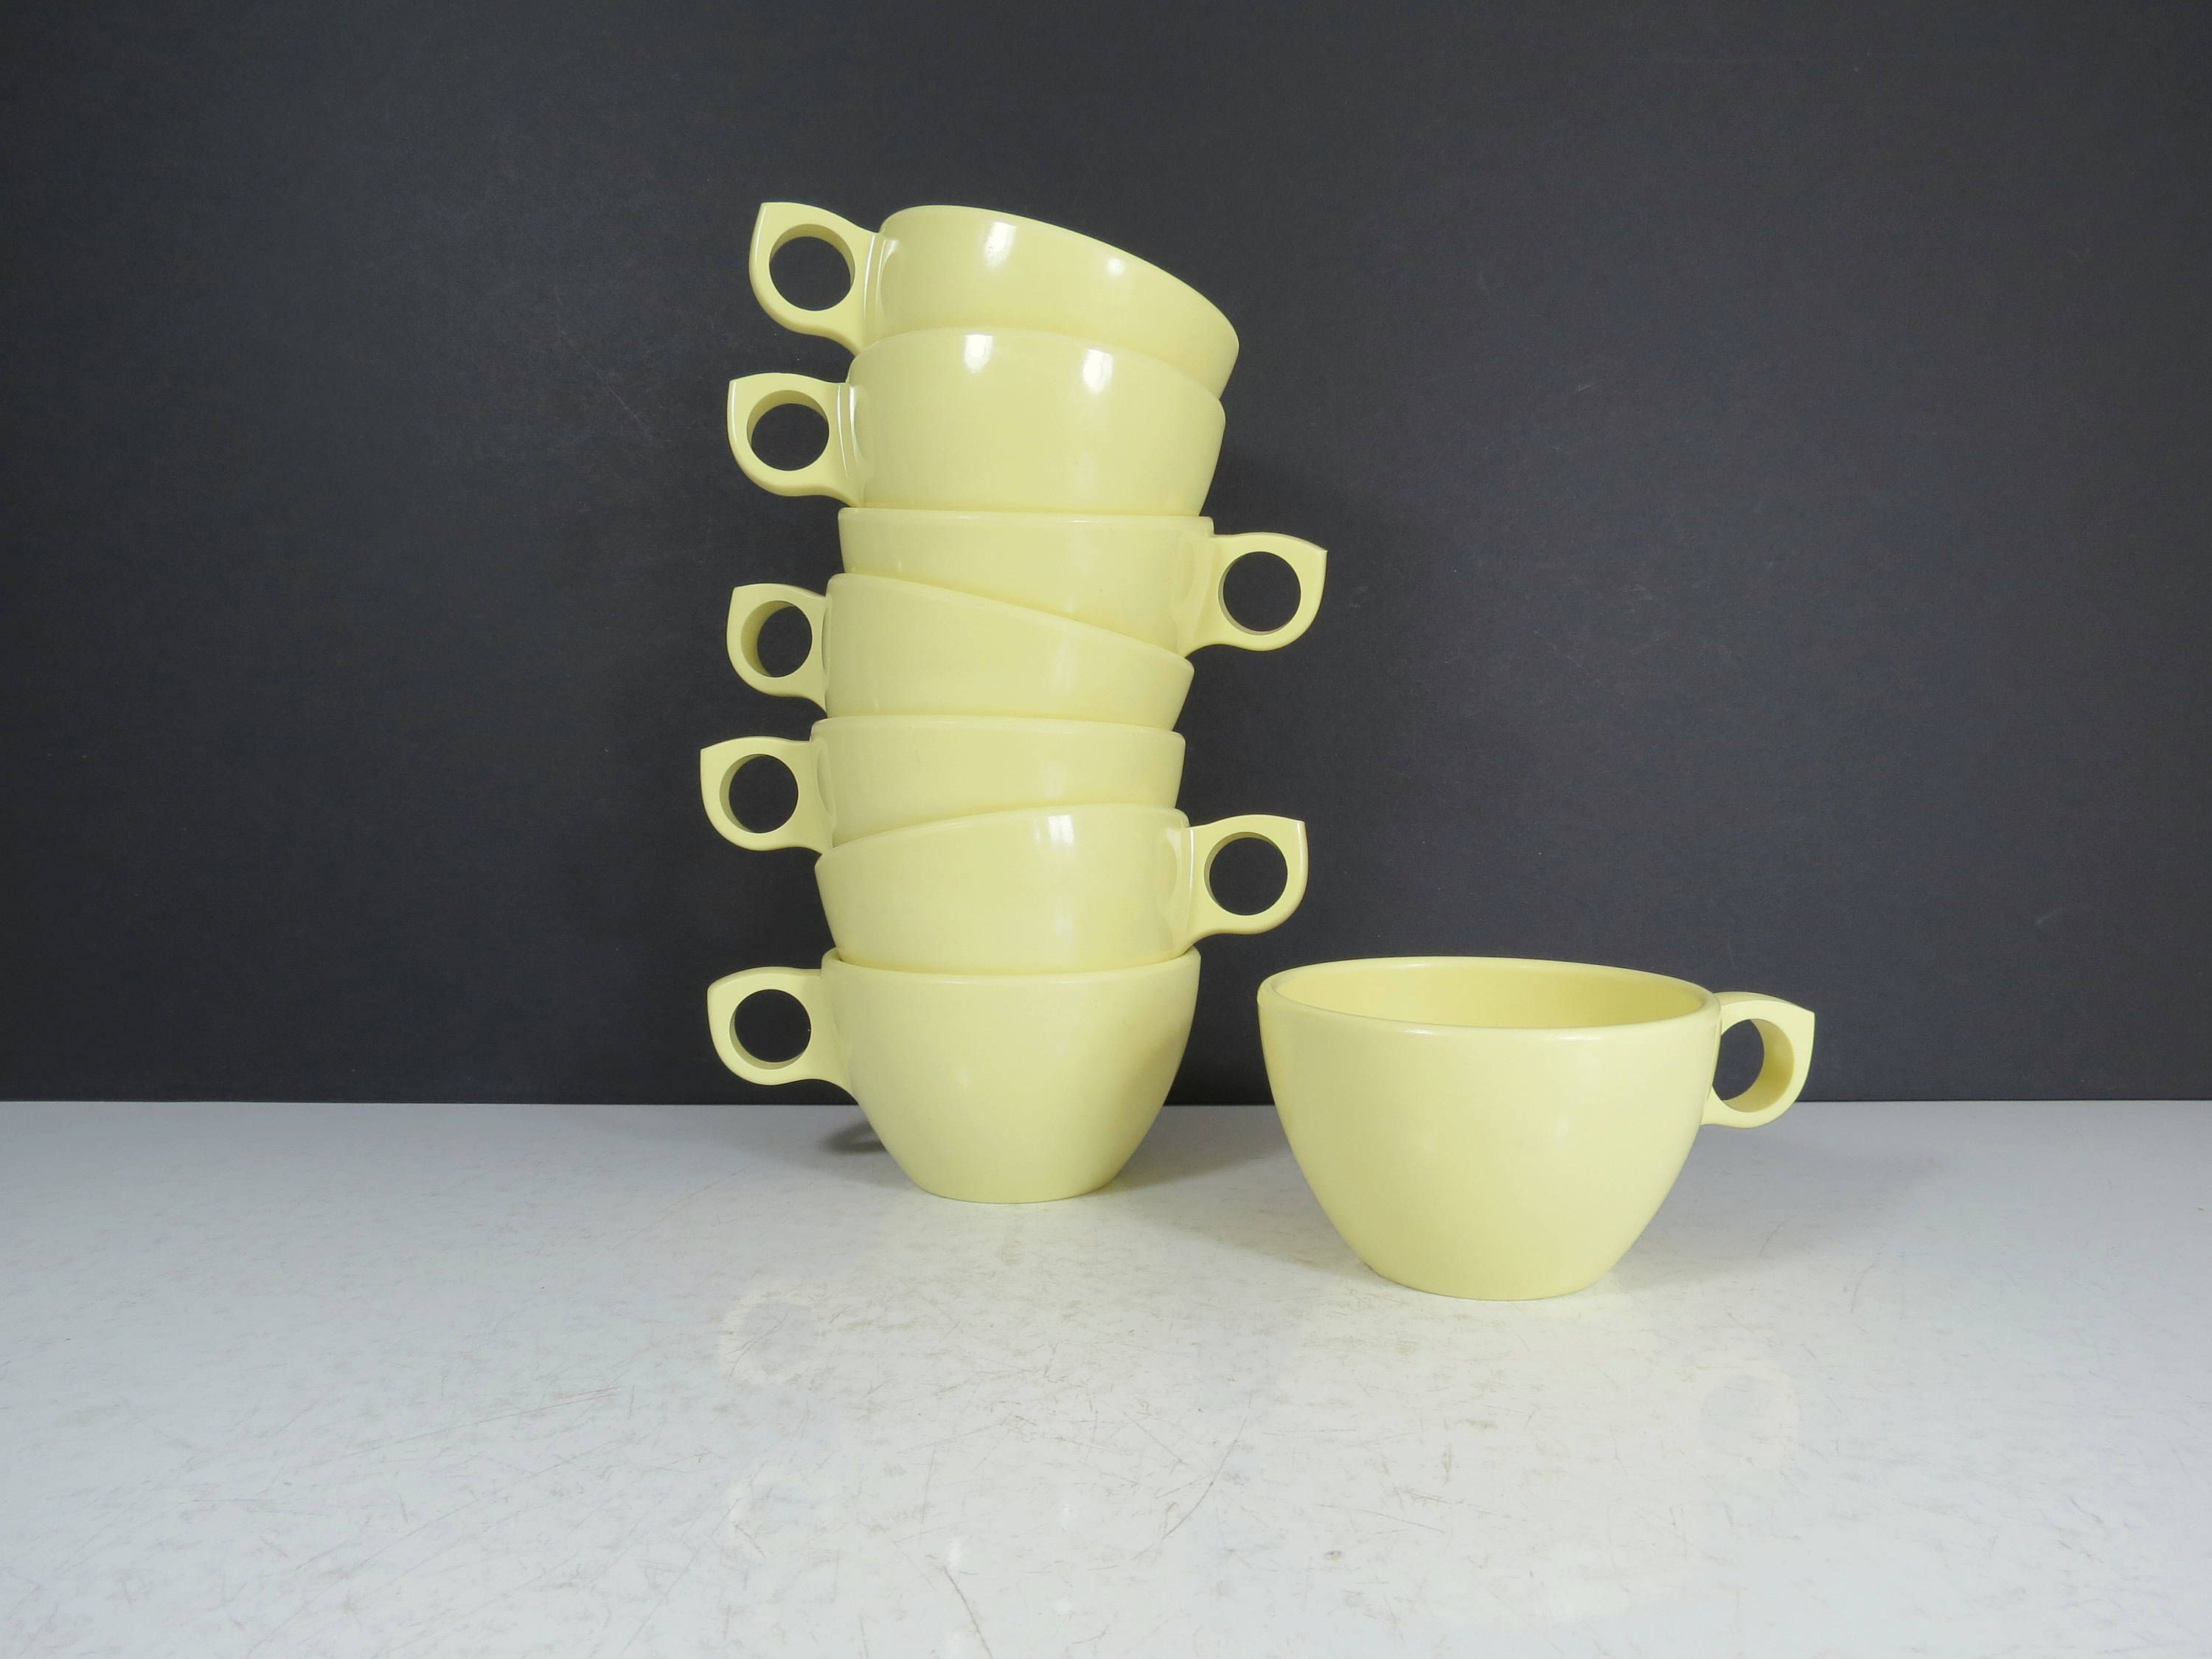 discontinued lenox vases of 43 lenox vase with gold trim the weekly world within melmac teacups set vintage pale yellow melamine coffee cups